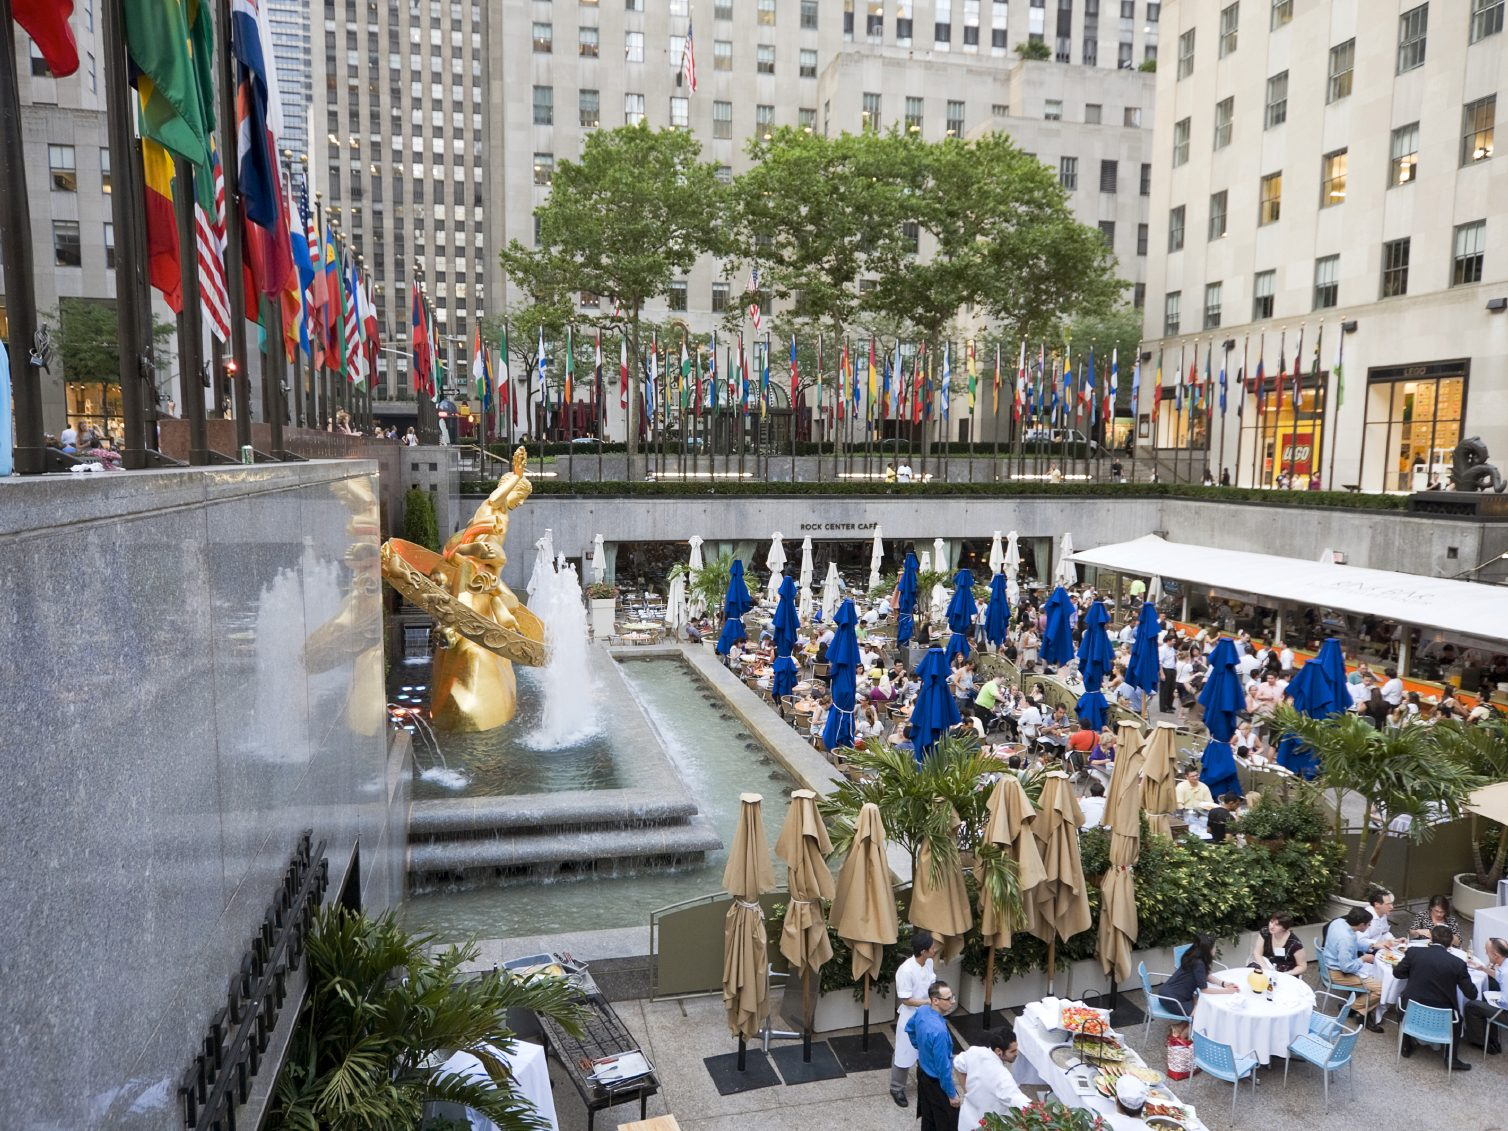 3. Le Rockefeller Center, une attraction touristique incontournable